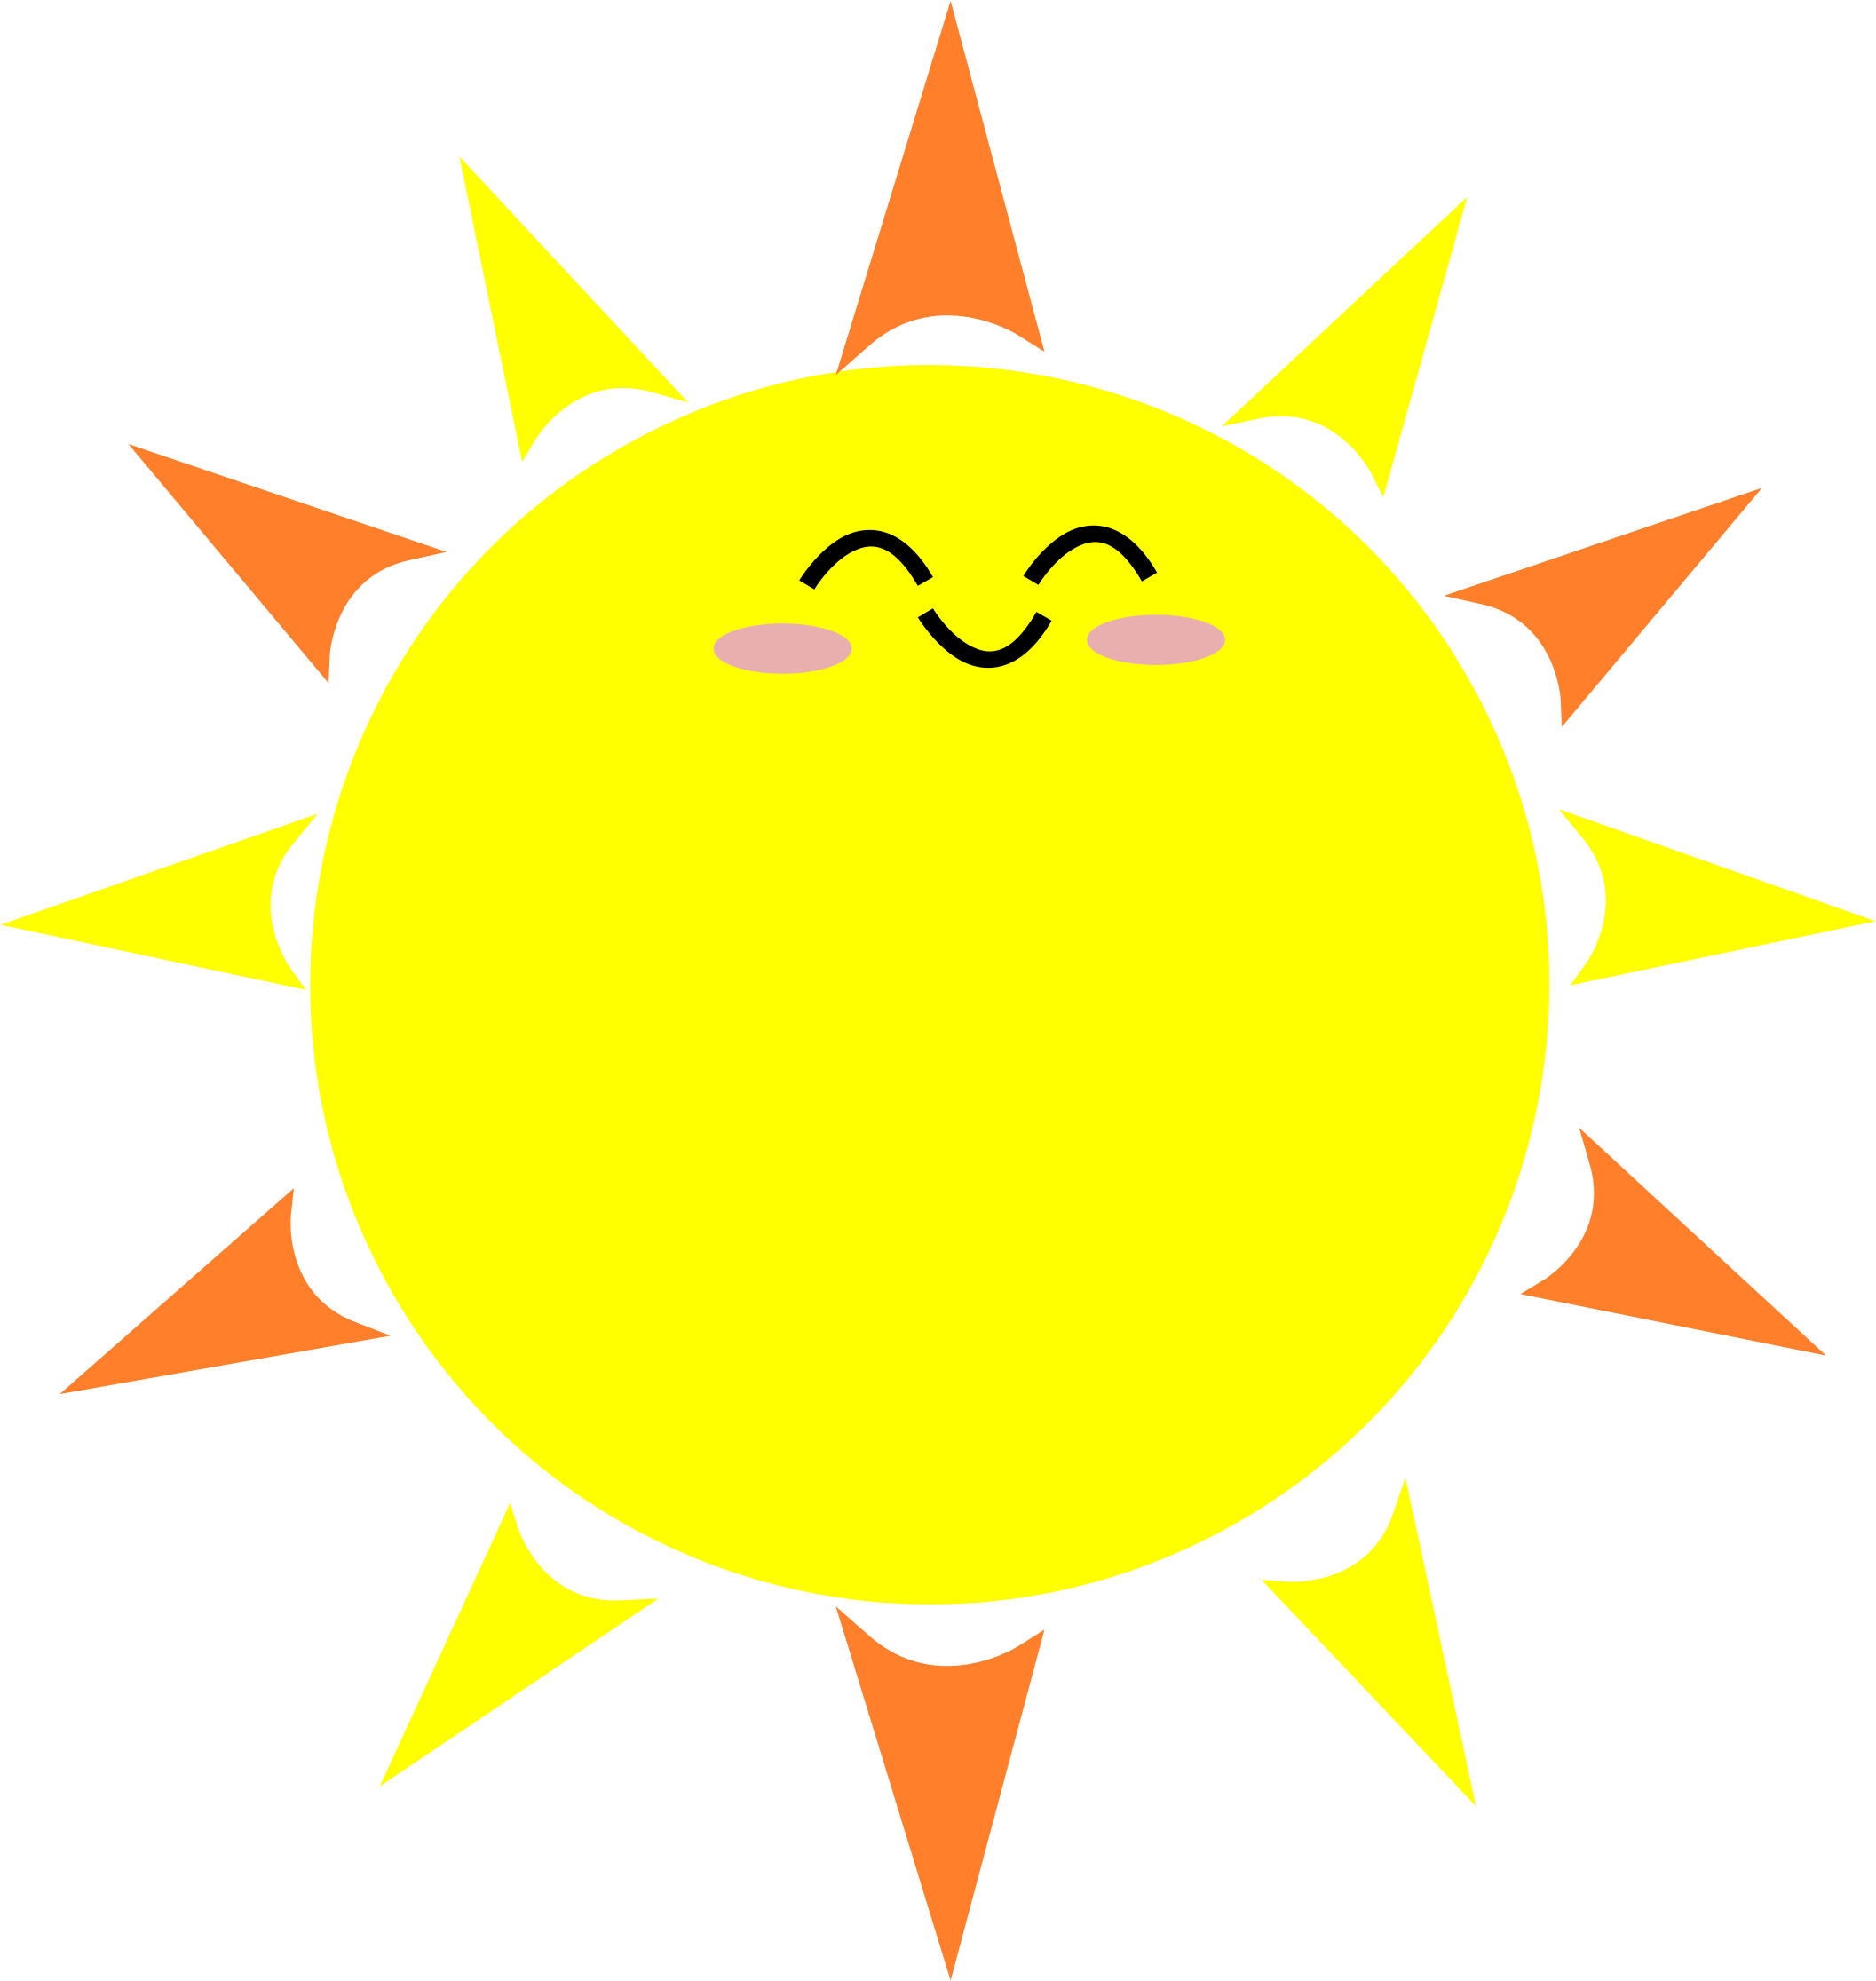 Happy big image png. Cute sun clipart